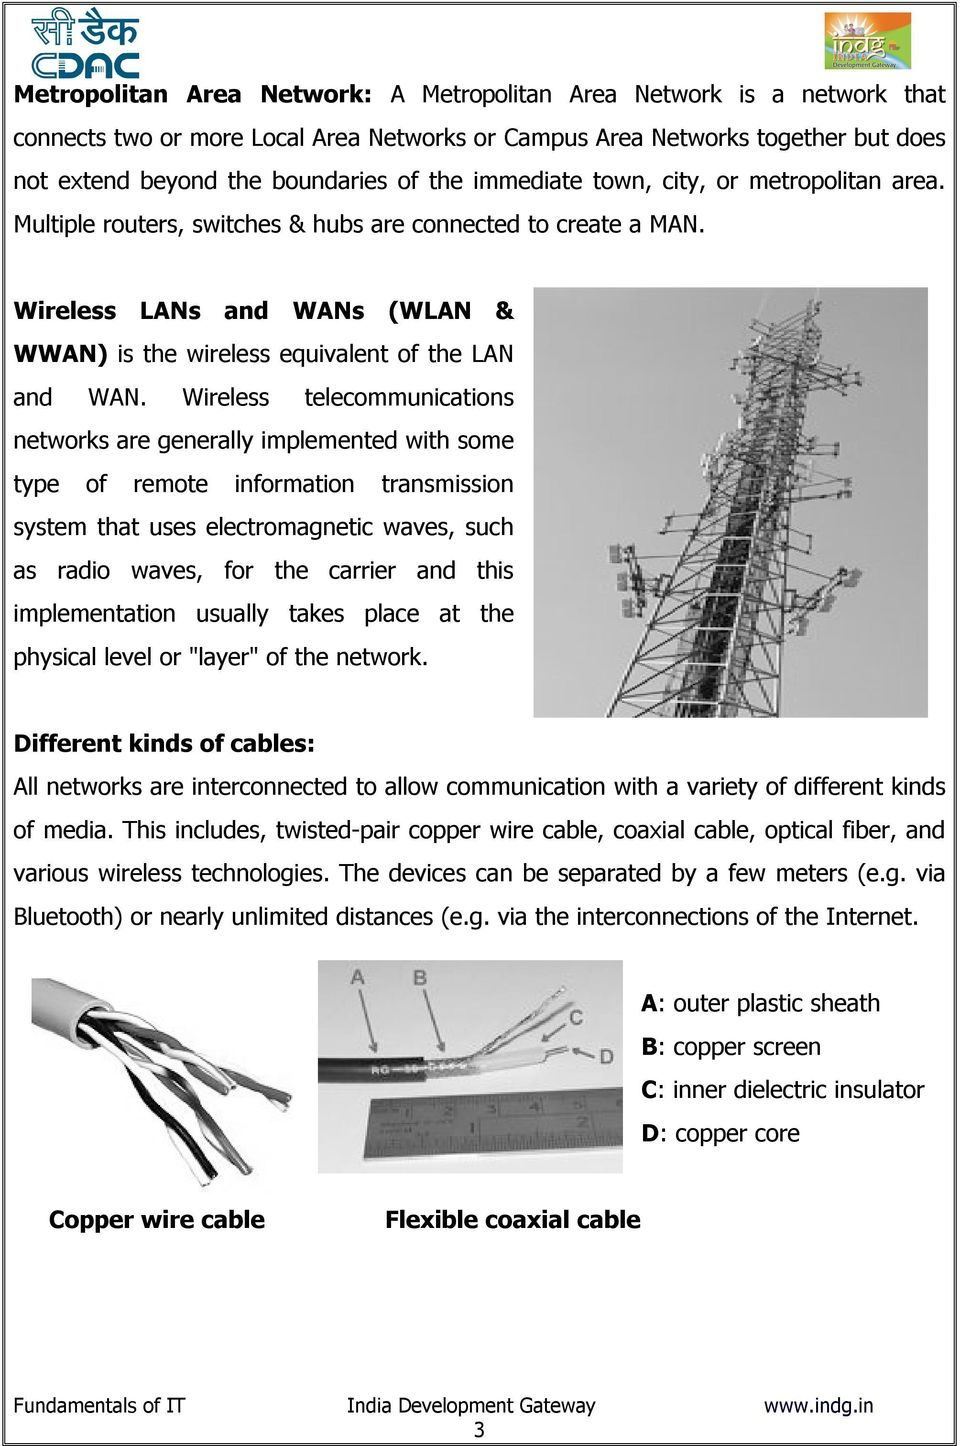 Wireless telecommunications networks are generally implemented with some type of remote information transmission system that uses electromagnetic waves, such as radio waves, for the carrier and this